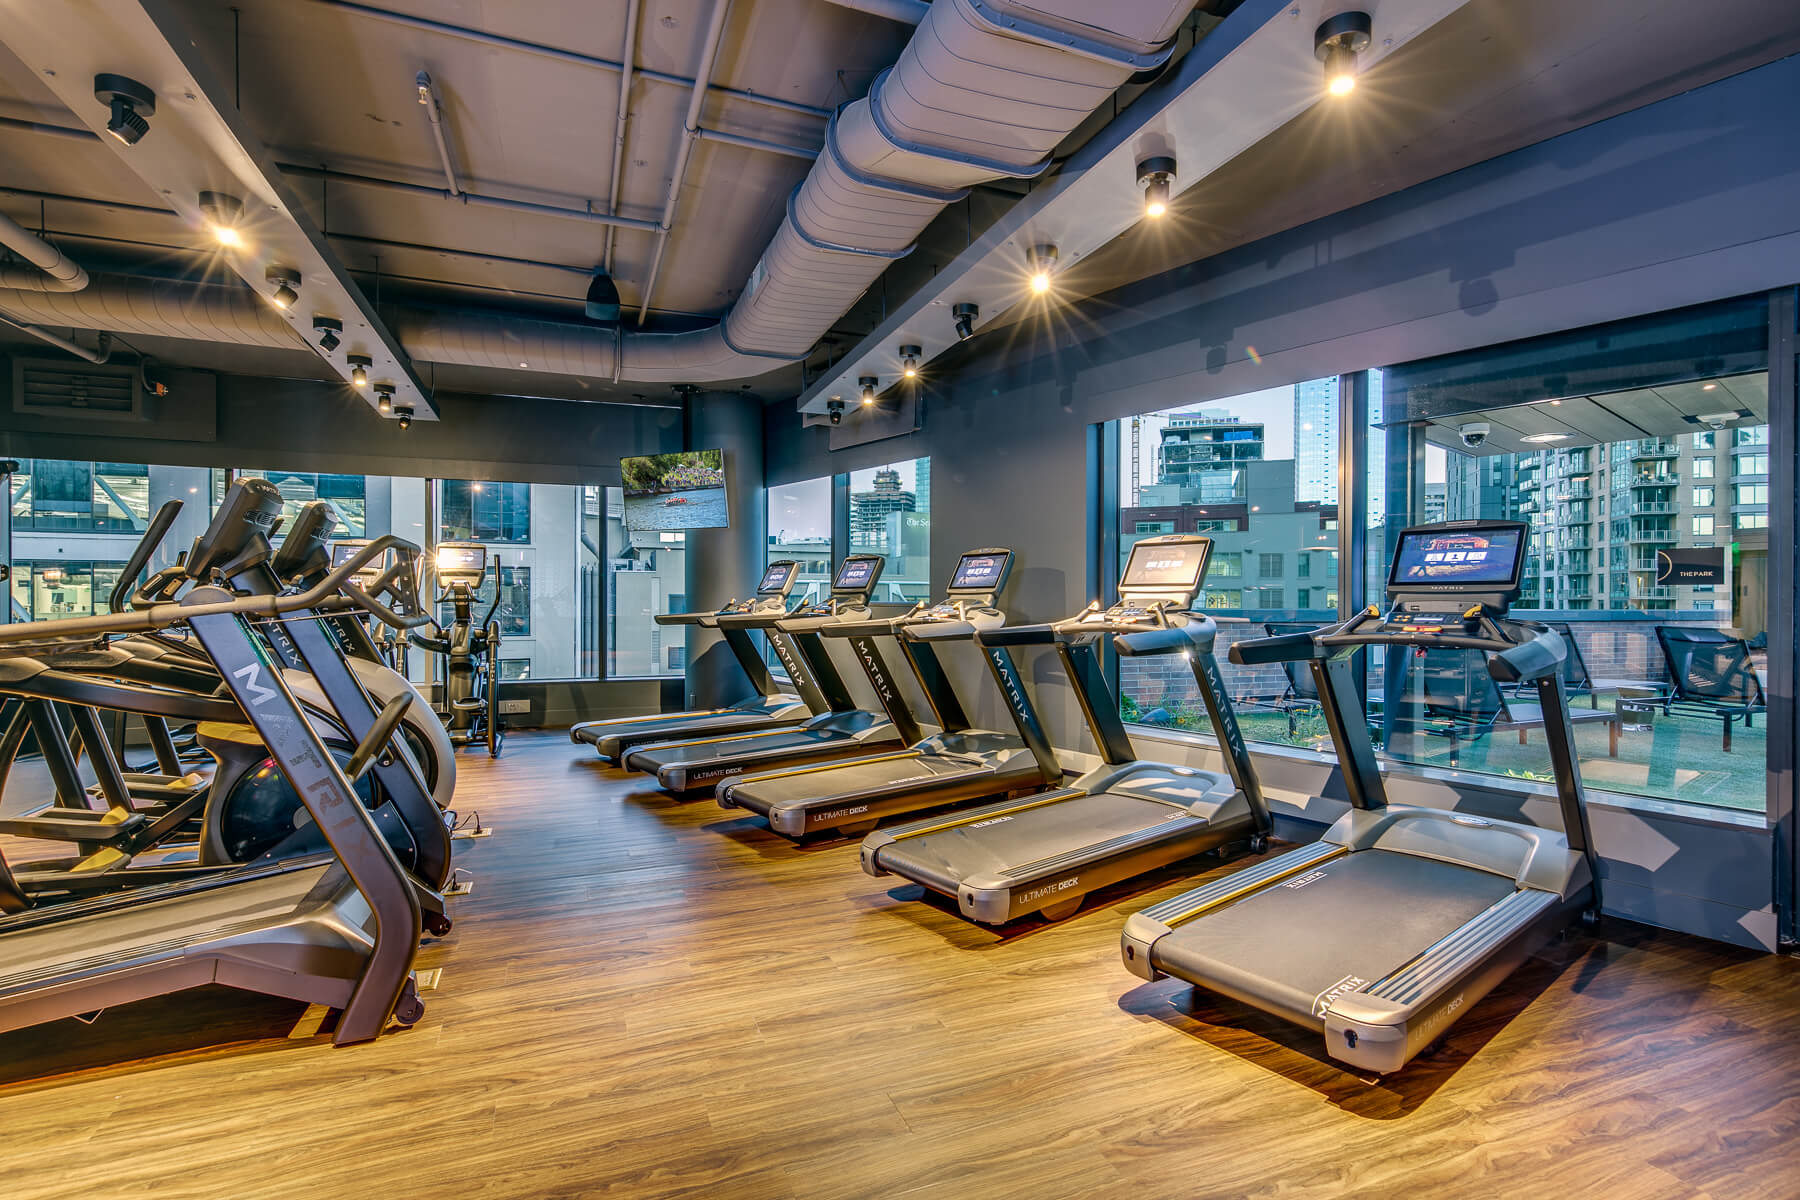 Fitness center at 970 Denny complete with treadmills and elliptical cardio machines